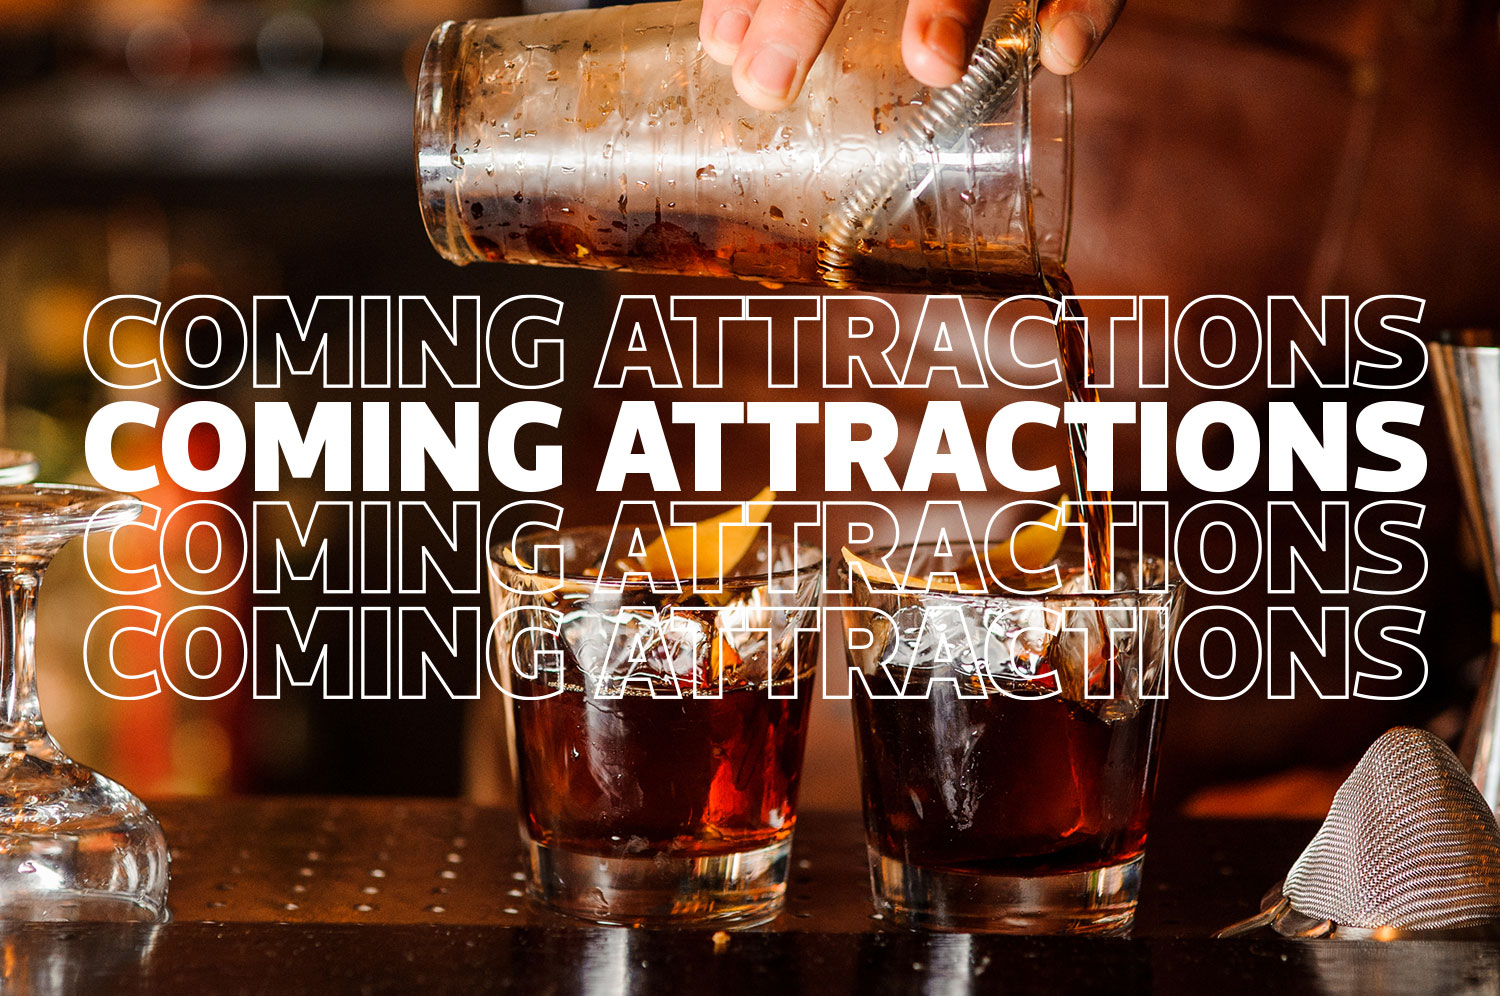 A hand pouring a mixed cocktail into two glasses on a bar behind text that reads Coming Attractions